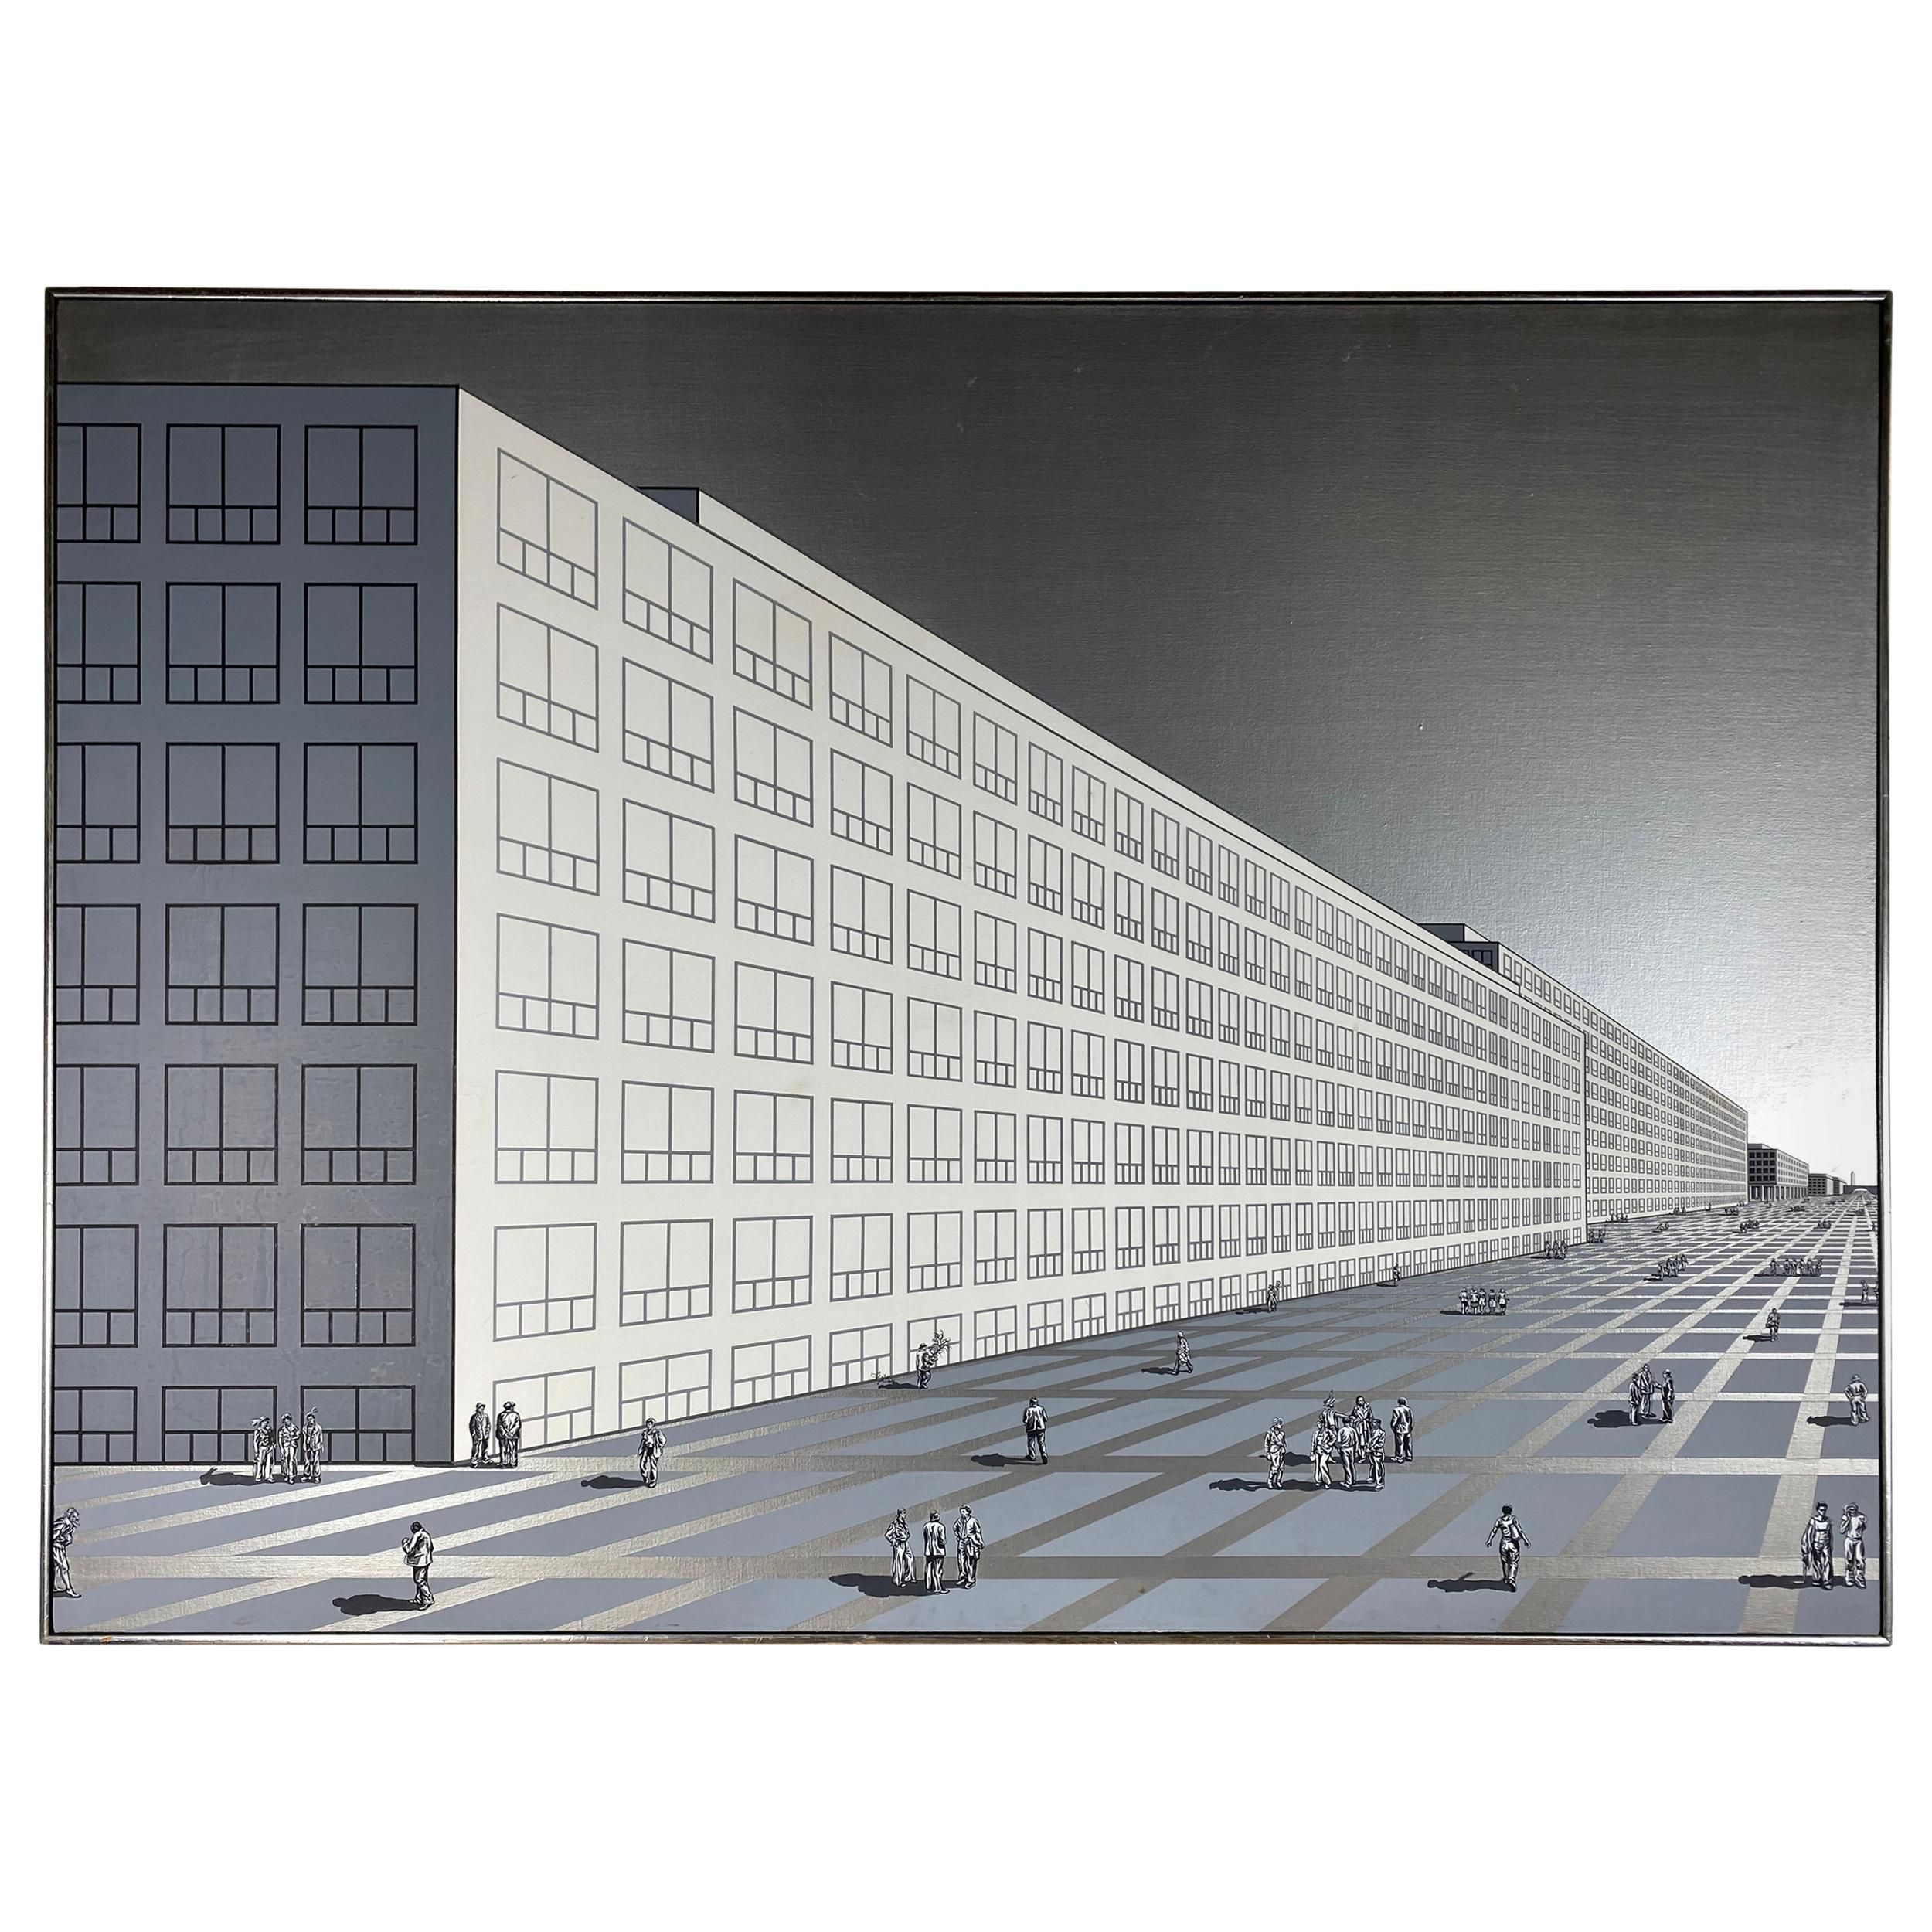 Monumental Modernist Architectural Oil Painting on Canvas, Nancy Wolf